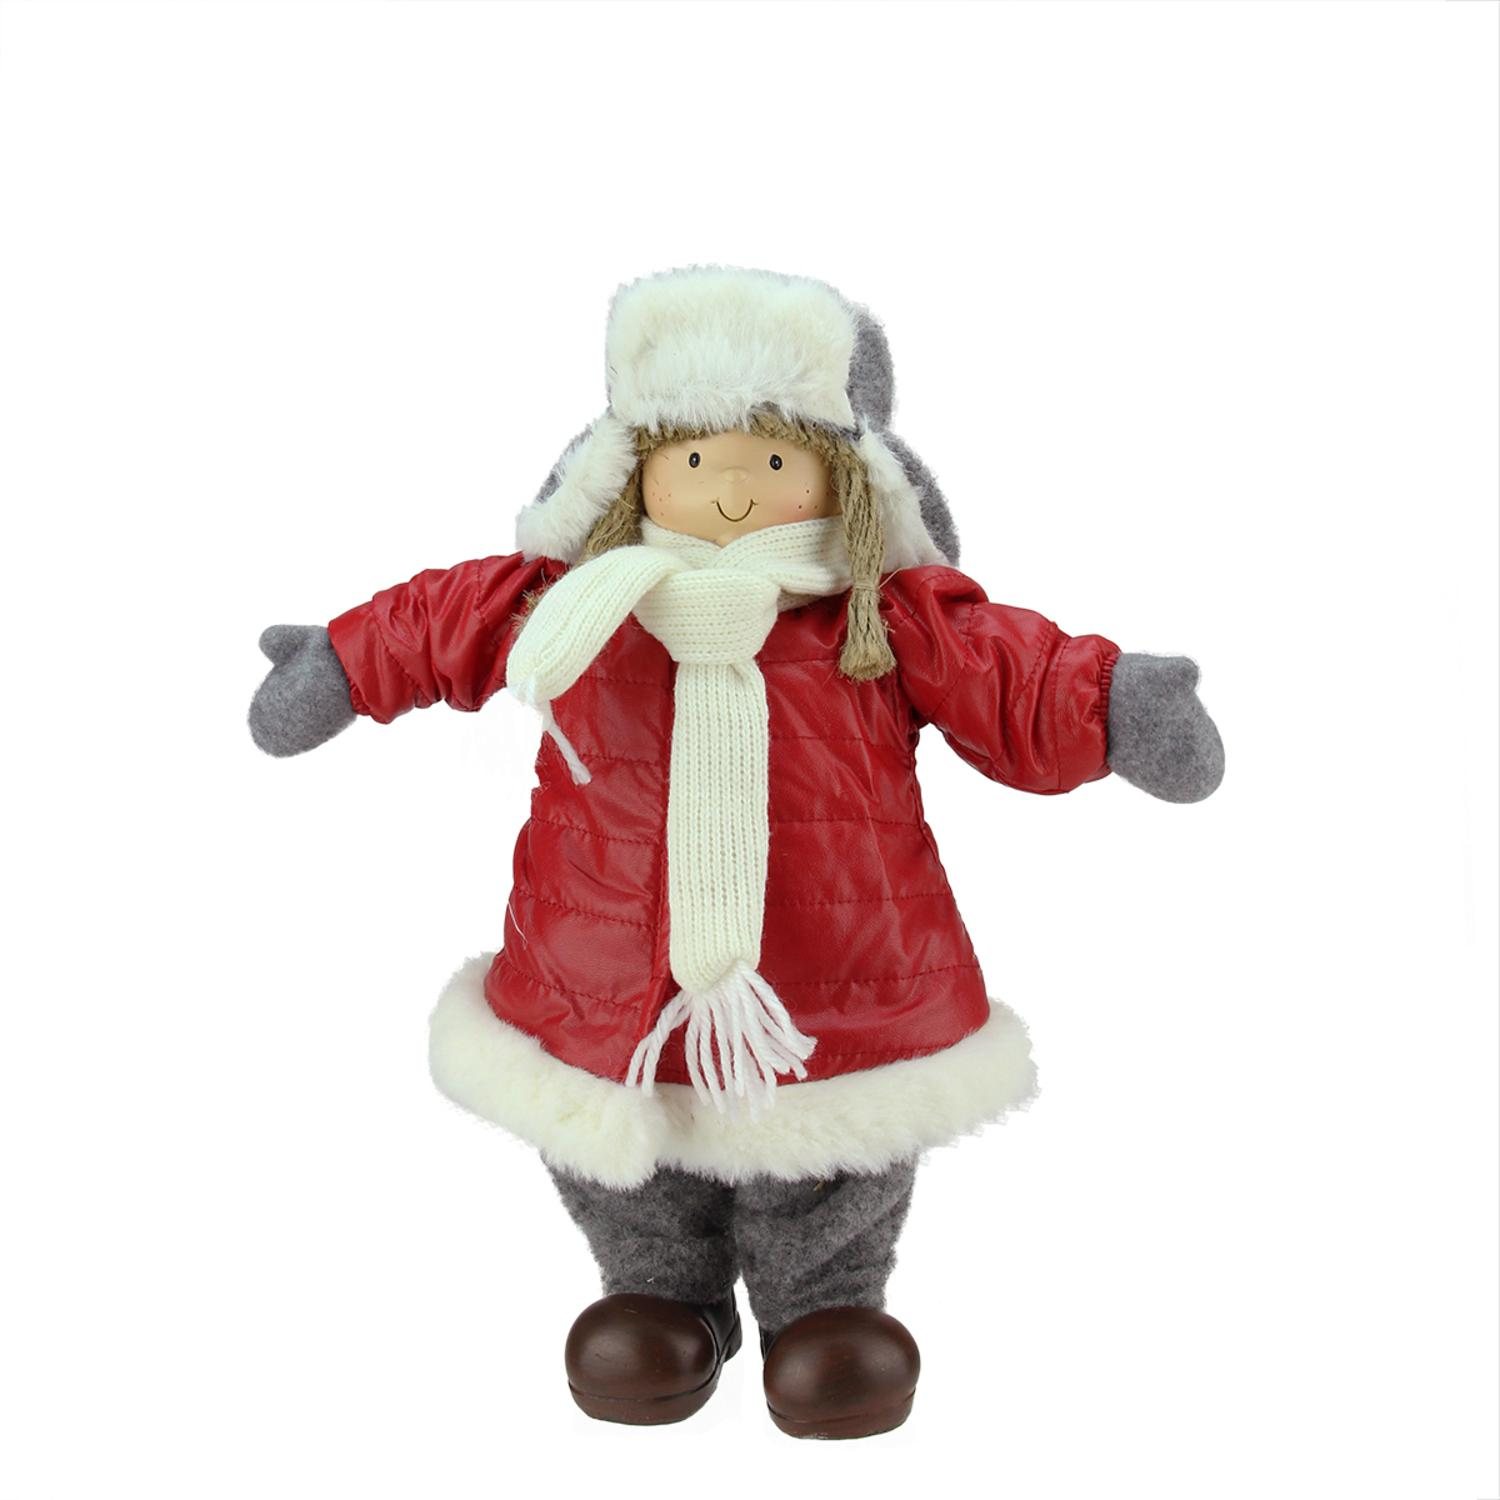 ''12.25'''' Cheerful Young Girl Gnome in Red Puffy WINTER COAT and Gray Hat Christmas Decoration''